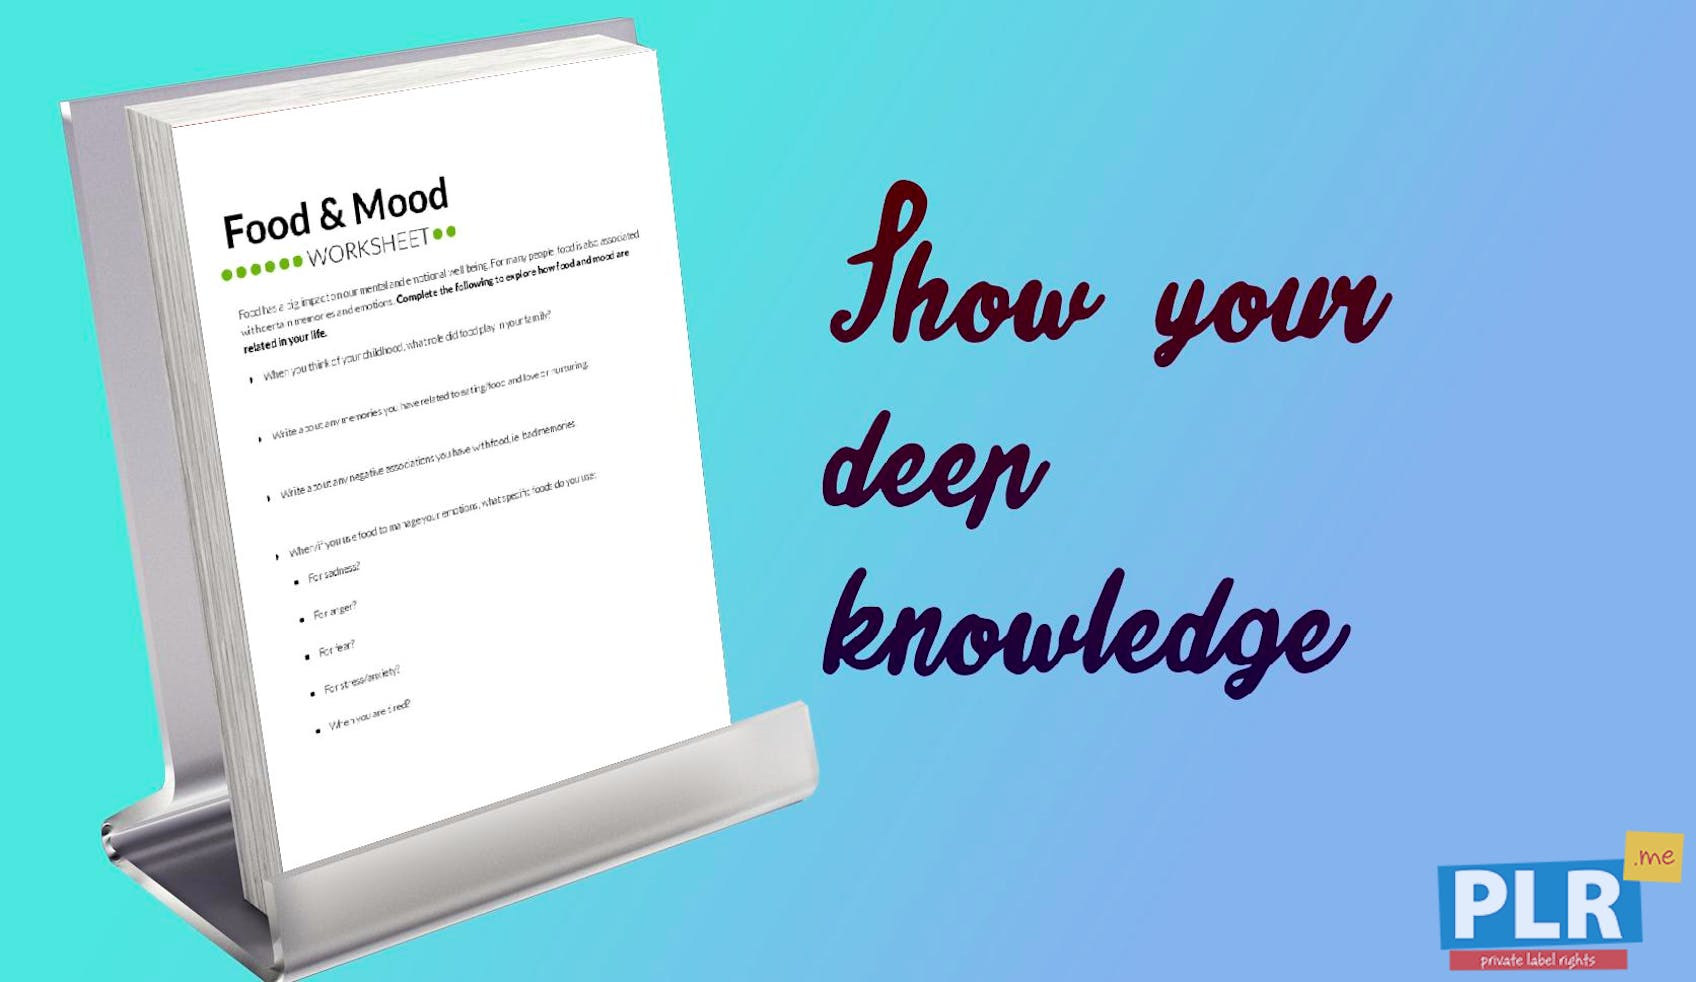 PLR Worksheets - Food And Mood Worksheet - PLR.me